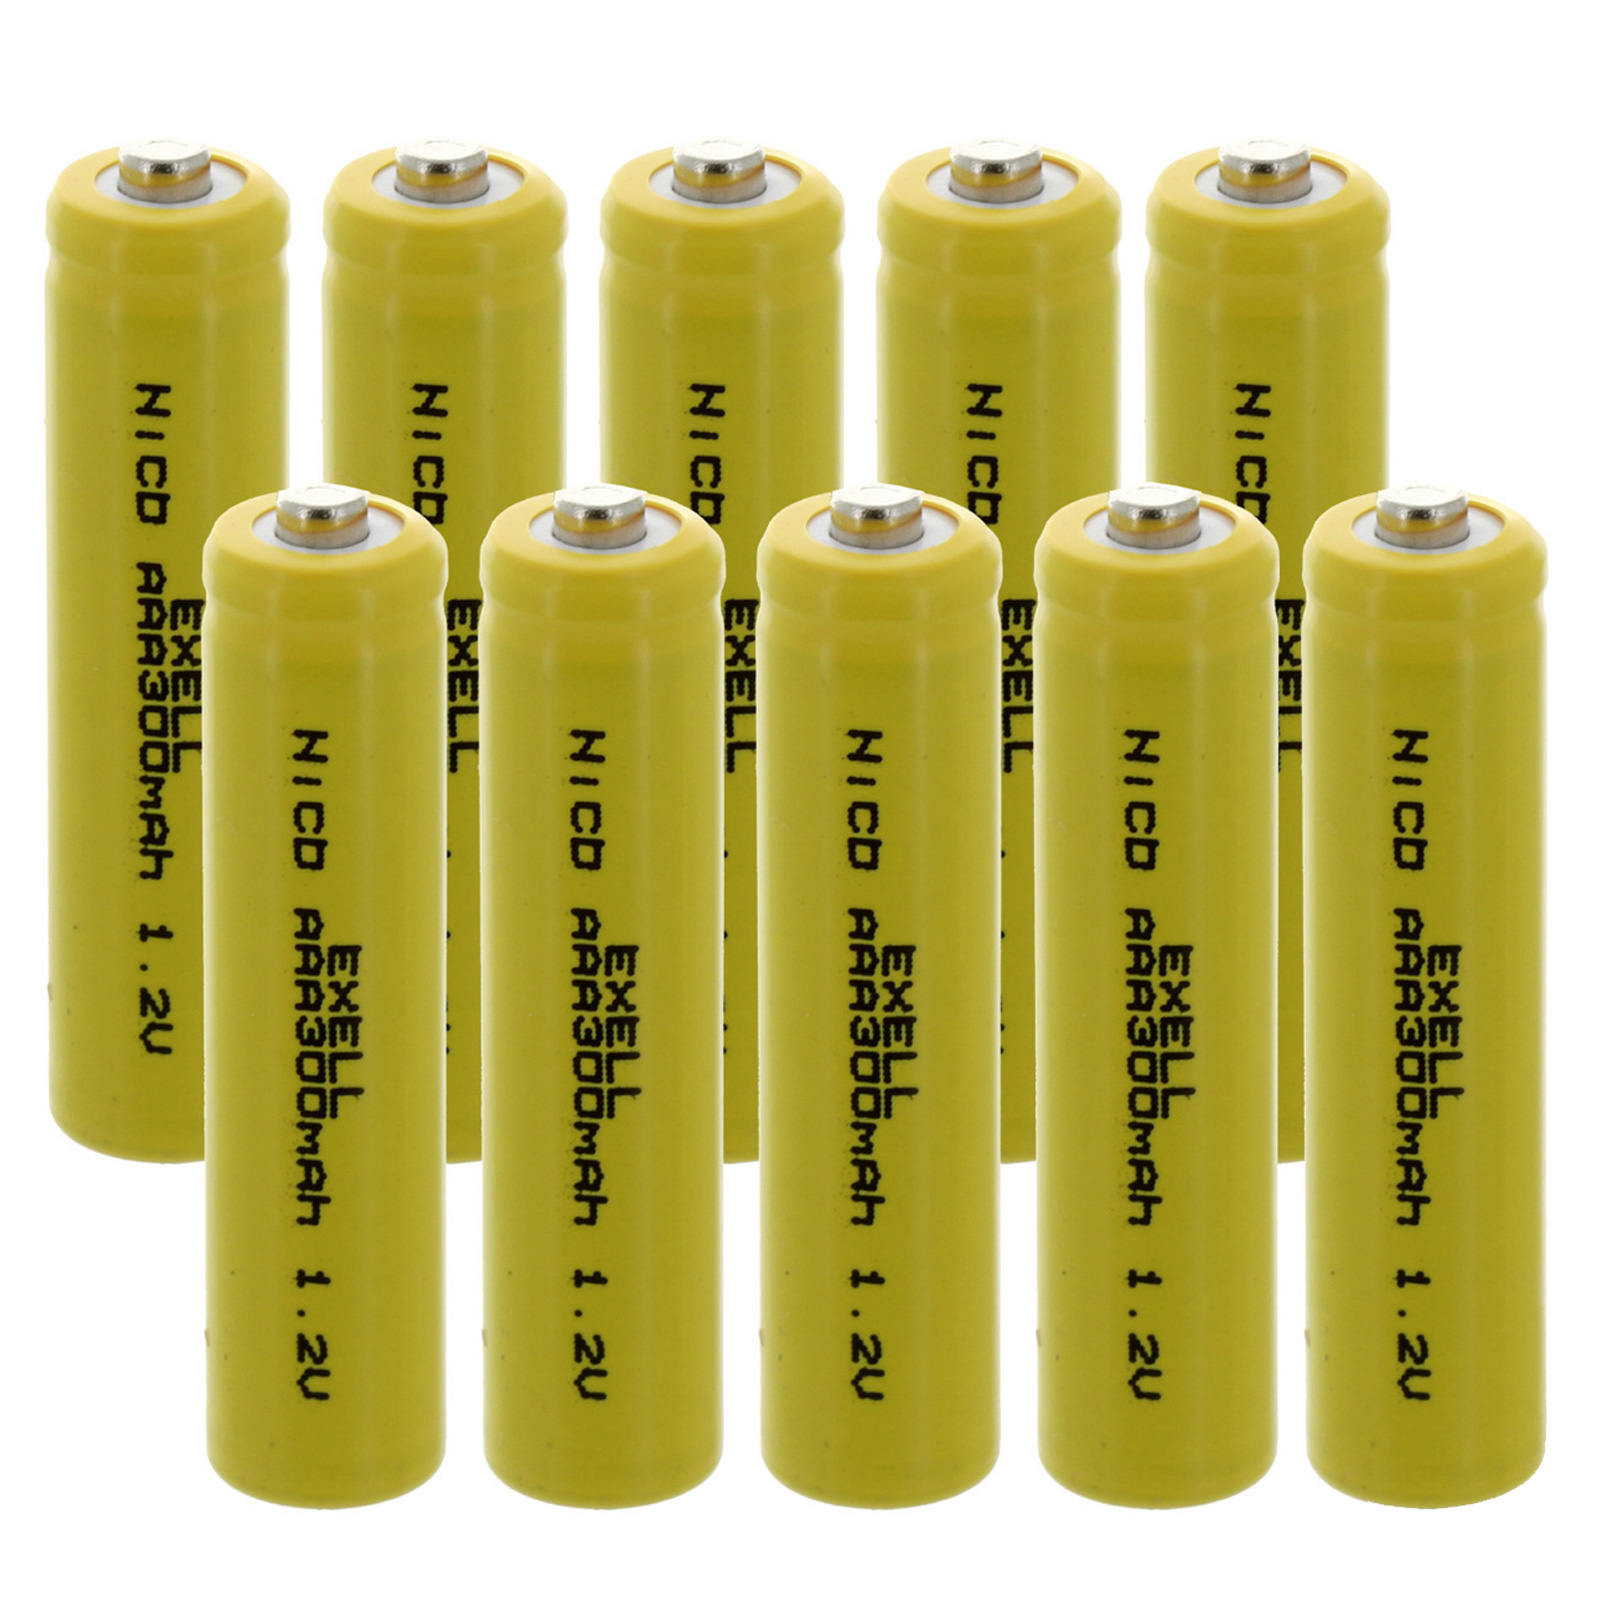 10x Exell AAA 1.2V 300mAh NiCD Button Top Rechargeable Batteries FAST USA SHIP